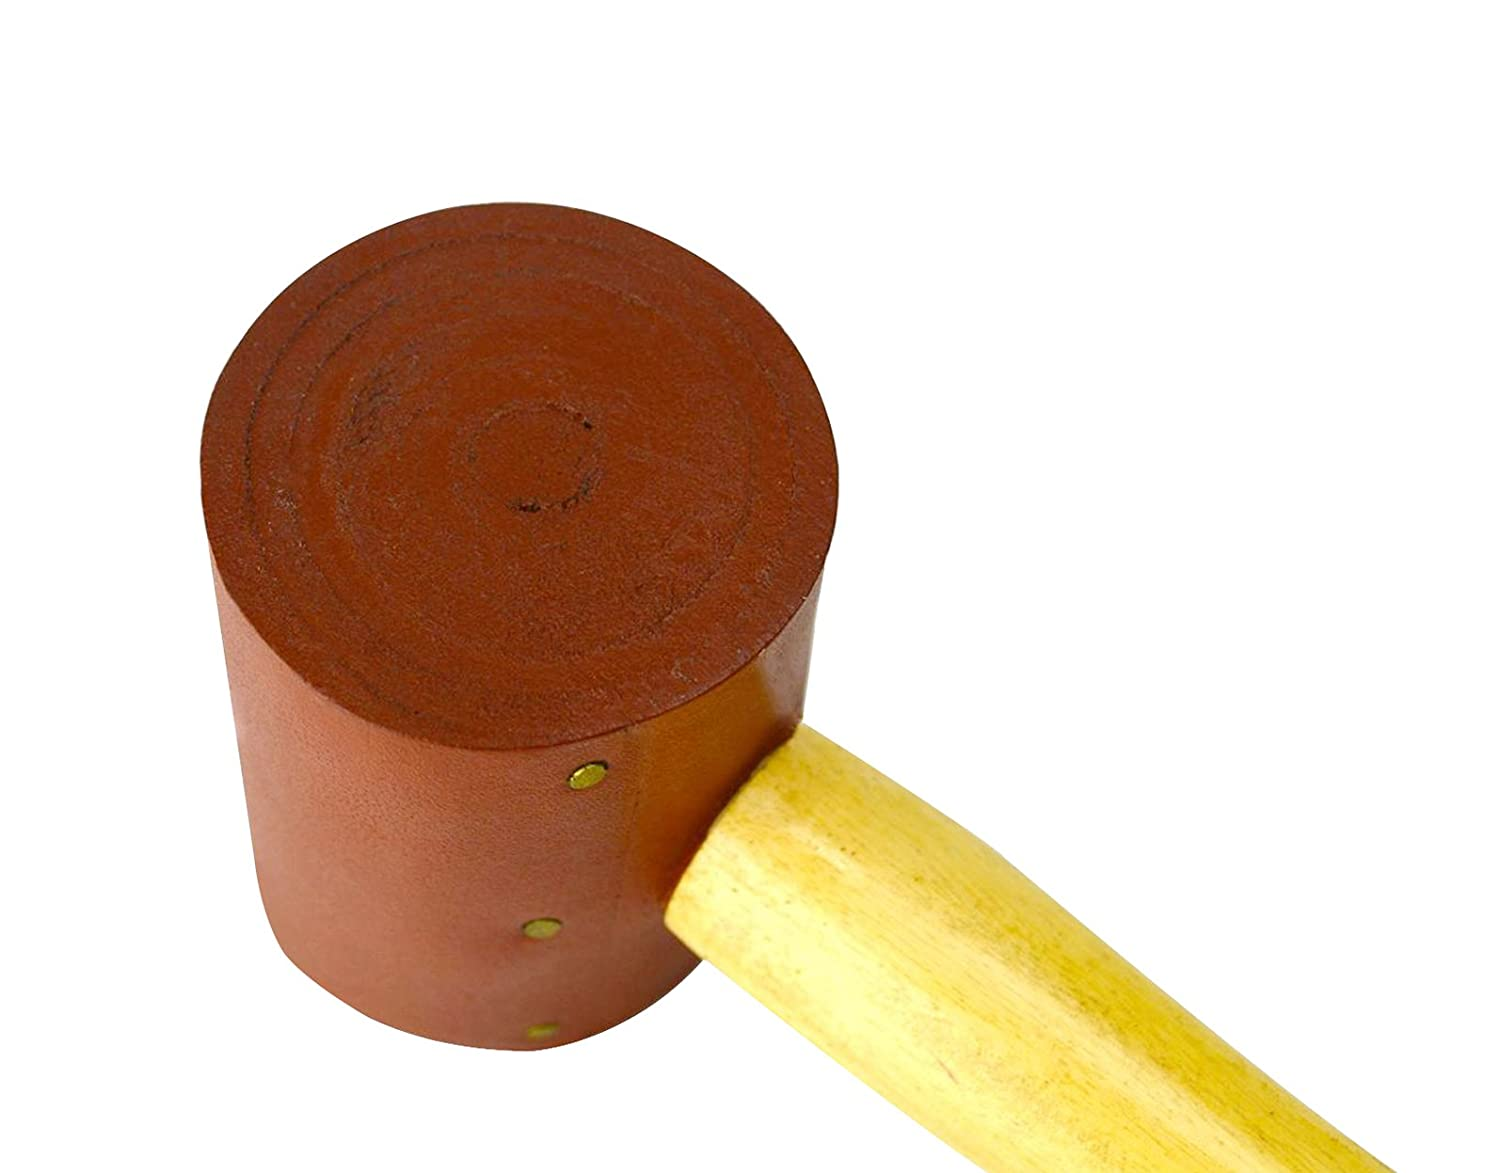 2 Rawhide Leather Mallet 6 oz Extra Soft Non-Coated Natural Rawhide Mallet Hammer Non-Marring Jewelry Making Metal Forming Stamping Leatherwork Tool PMC Supplies HAM-0032